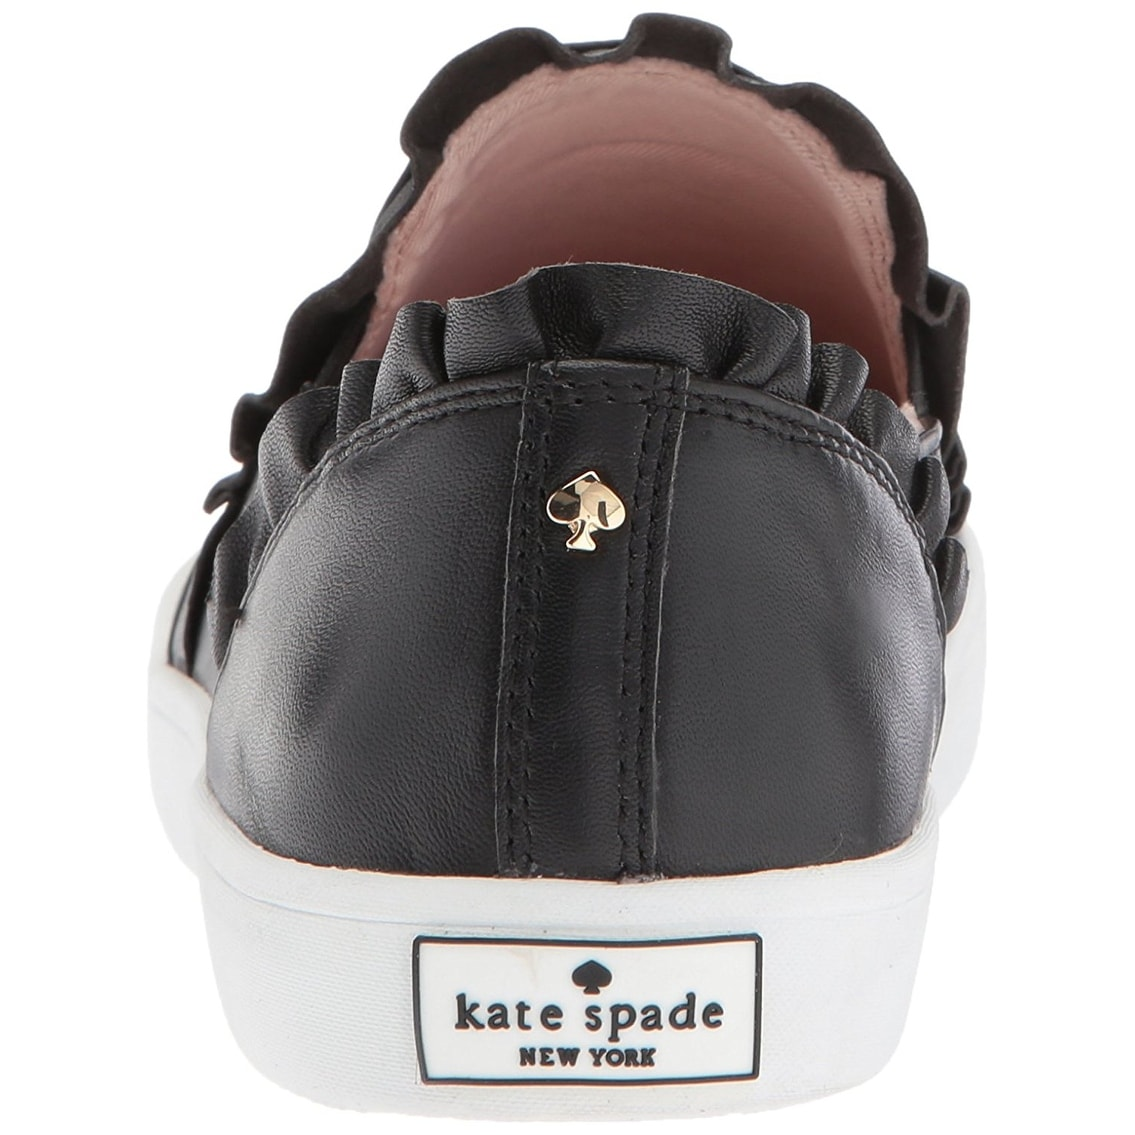 86e01dbb5ff7 Shop Kate Spade New York Womens S1120019NAP Suede Low Top Slip On Fashion  Sneakers - Ships To Canada - Overstock - 21334414